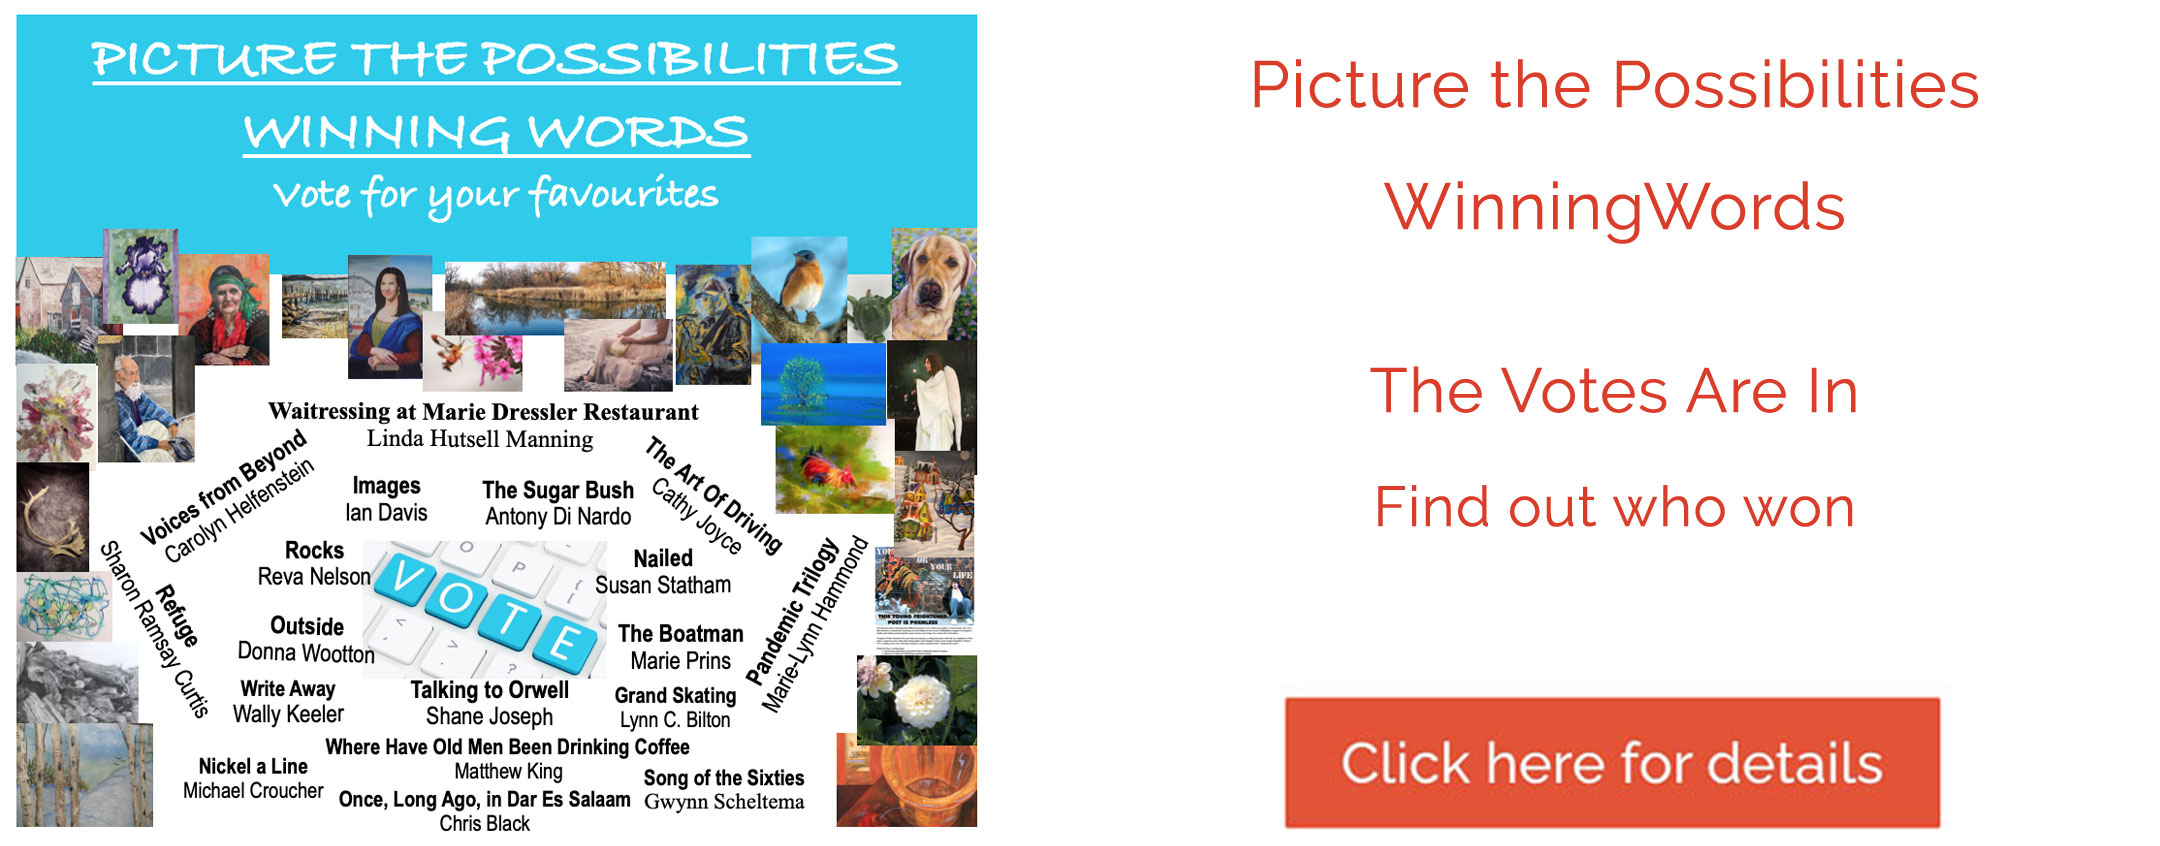 Picture the Possibilities & Winning Words